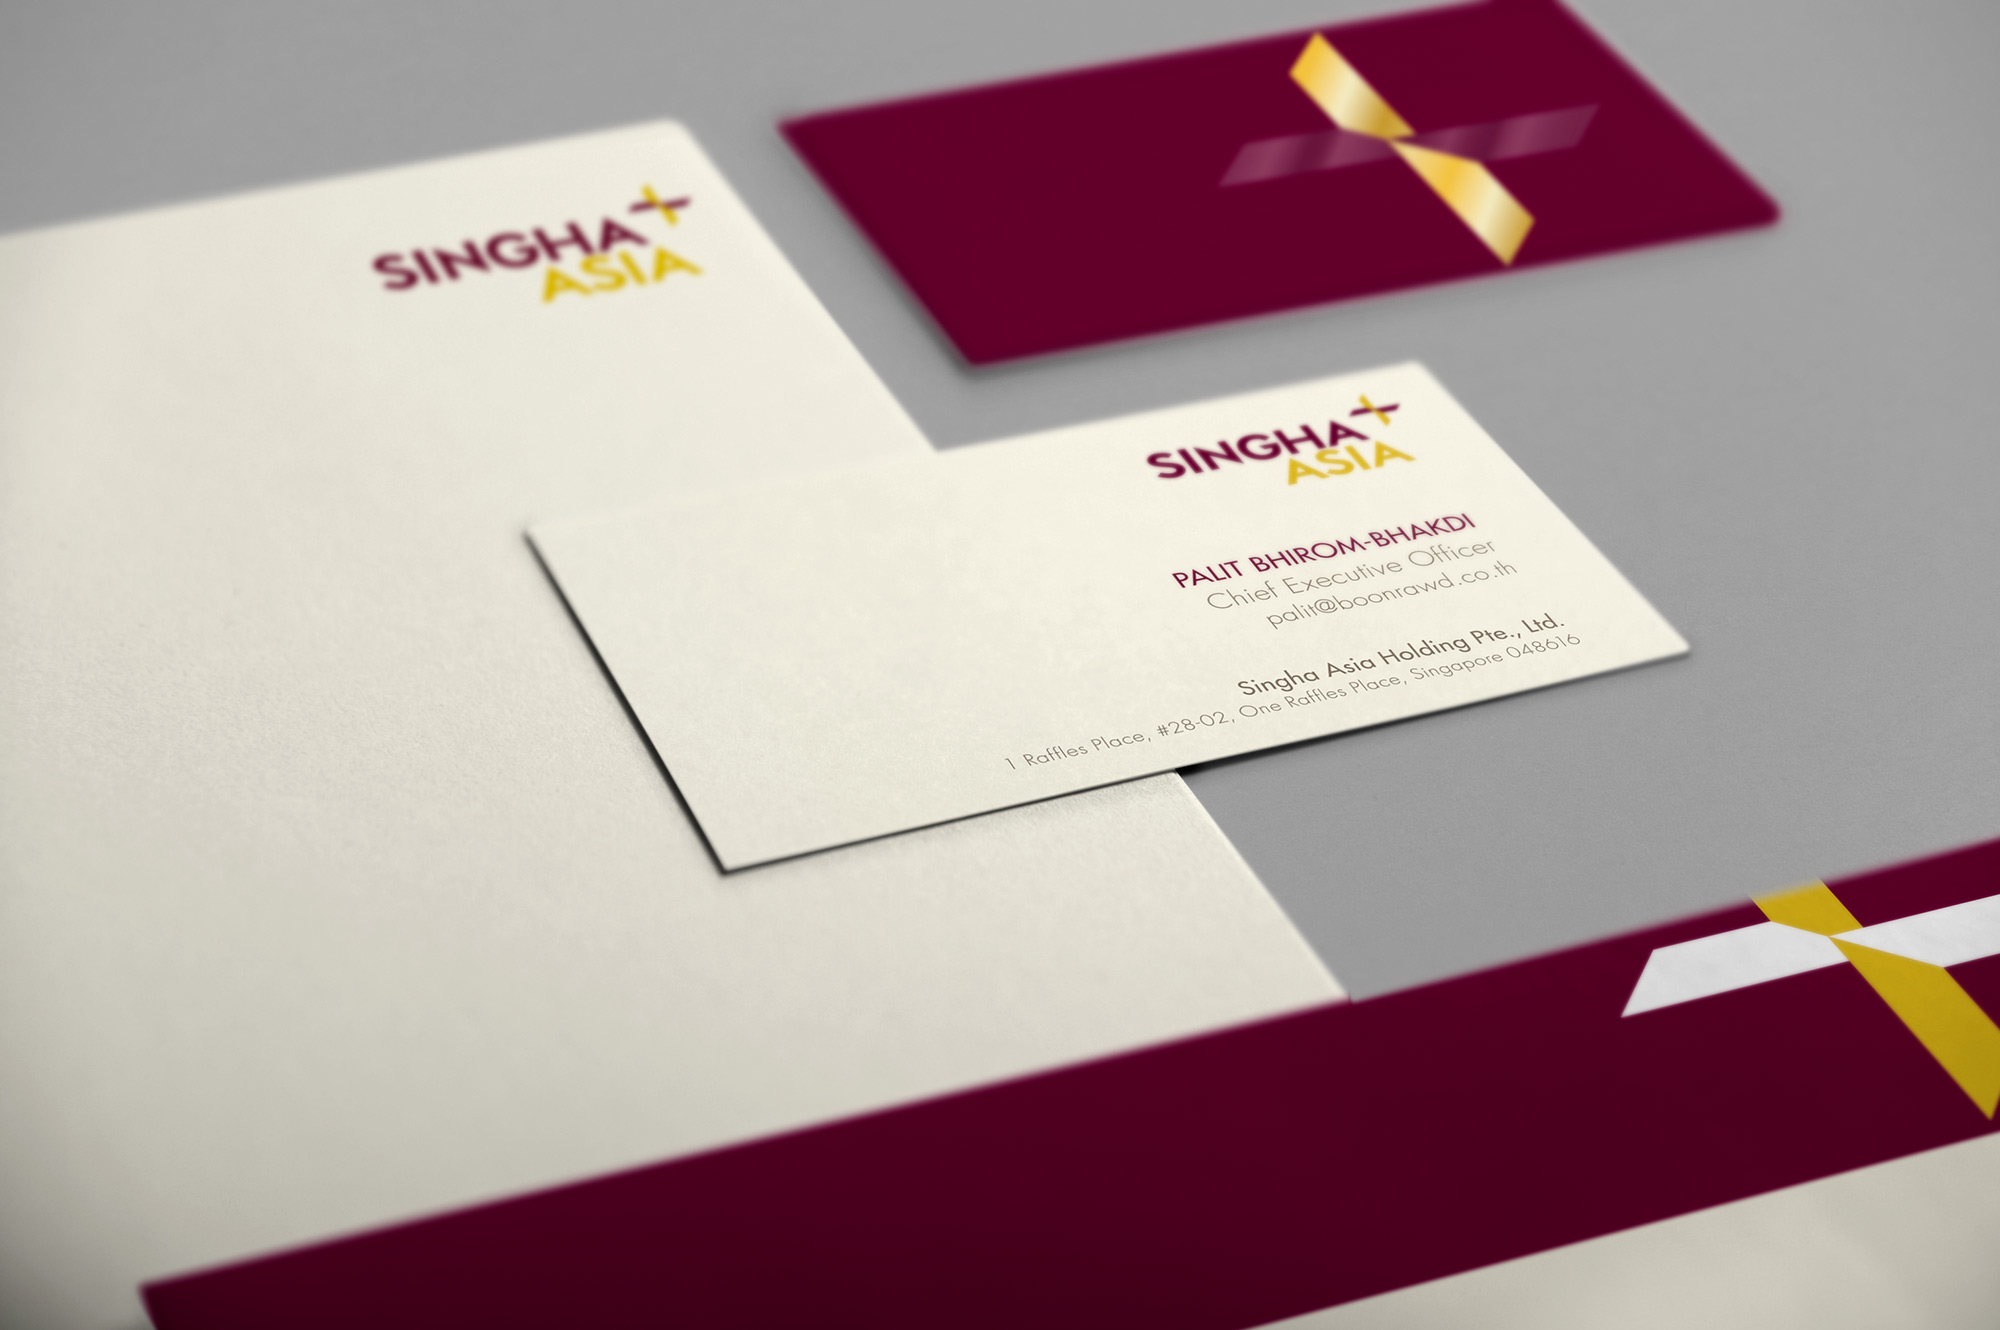 Singha Asia Business Card Design